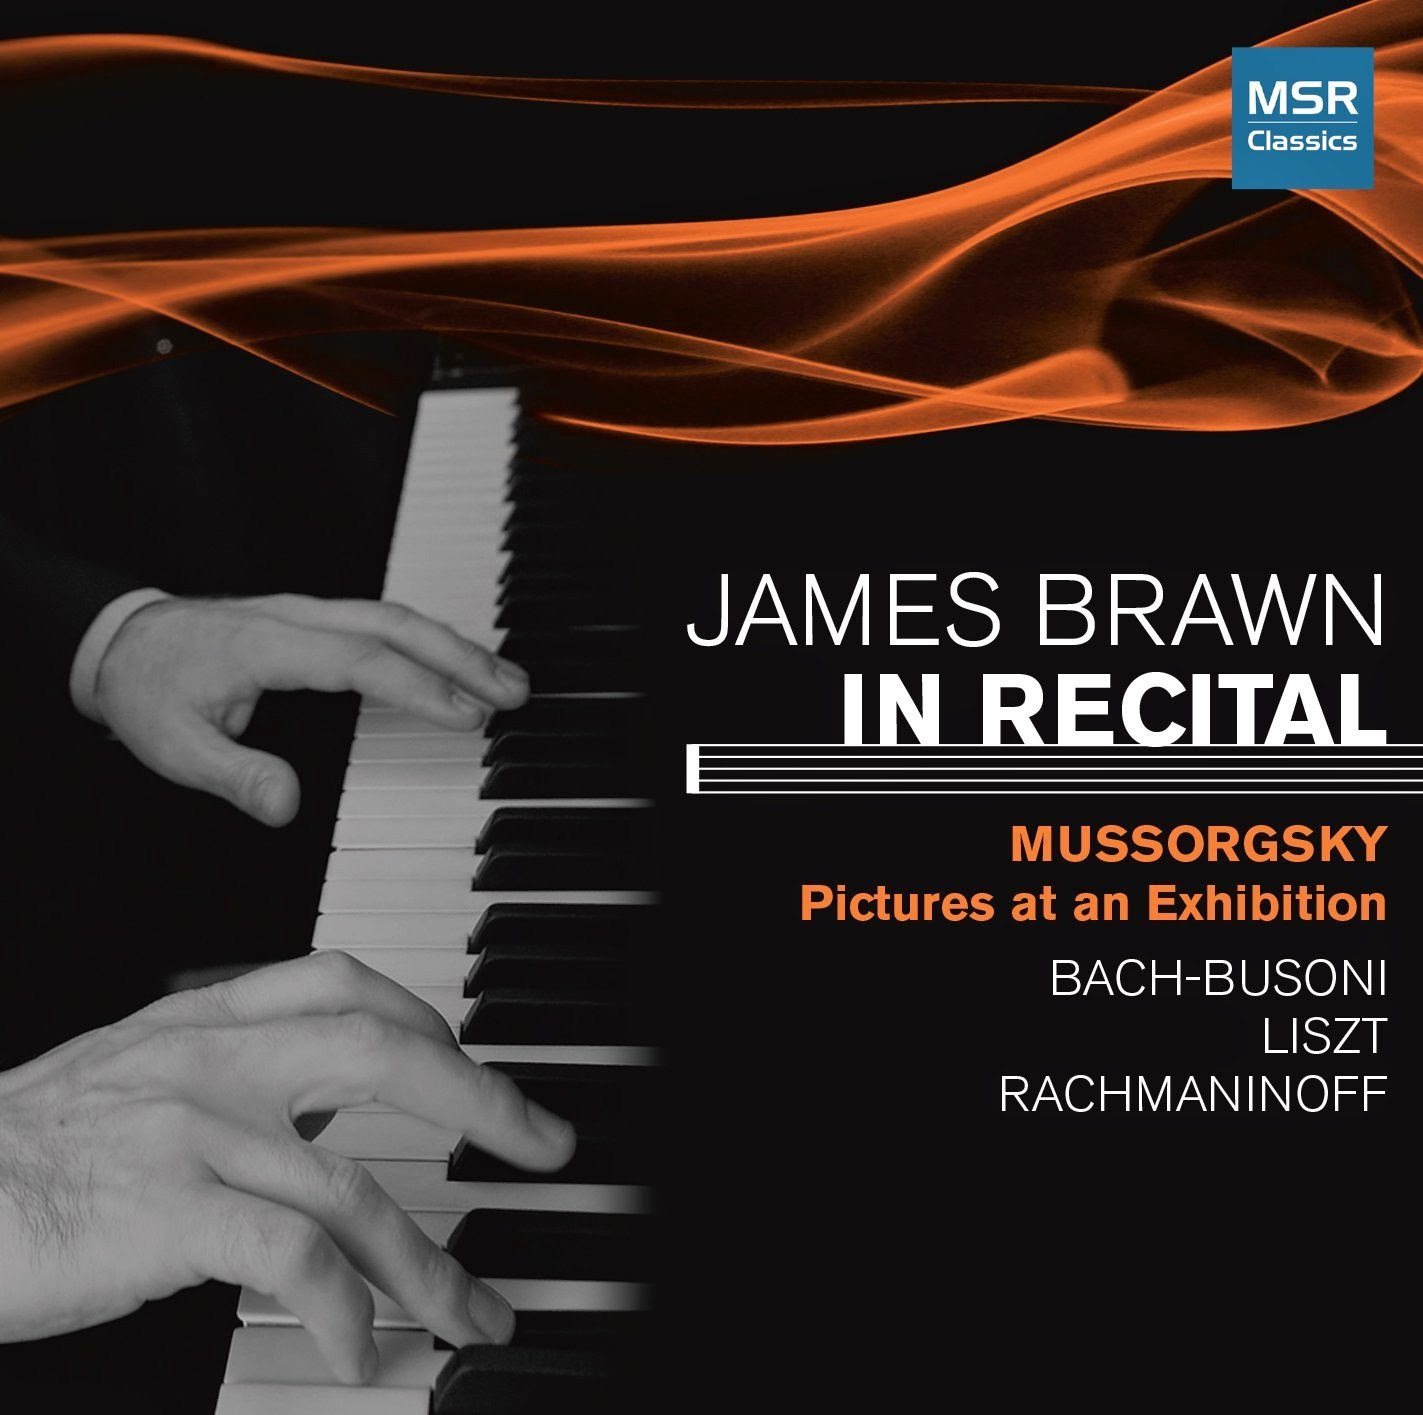 James Brawn in Recital - MSR Classics